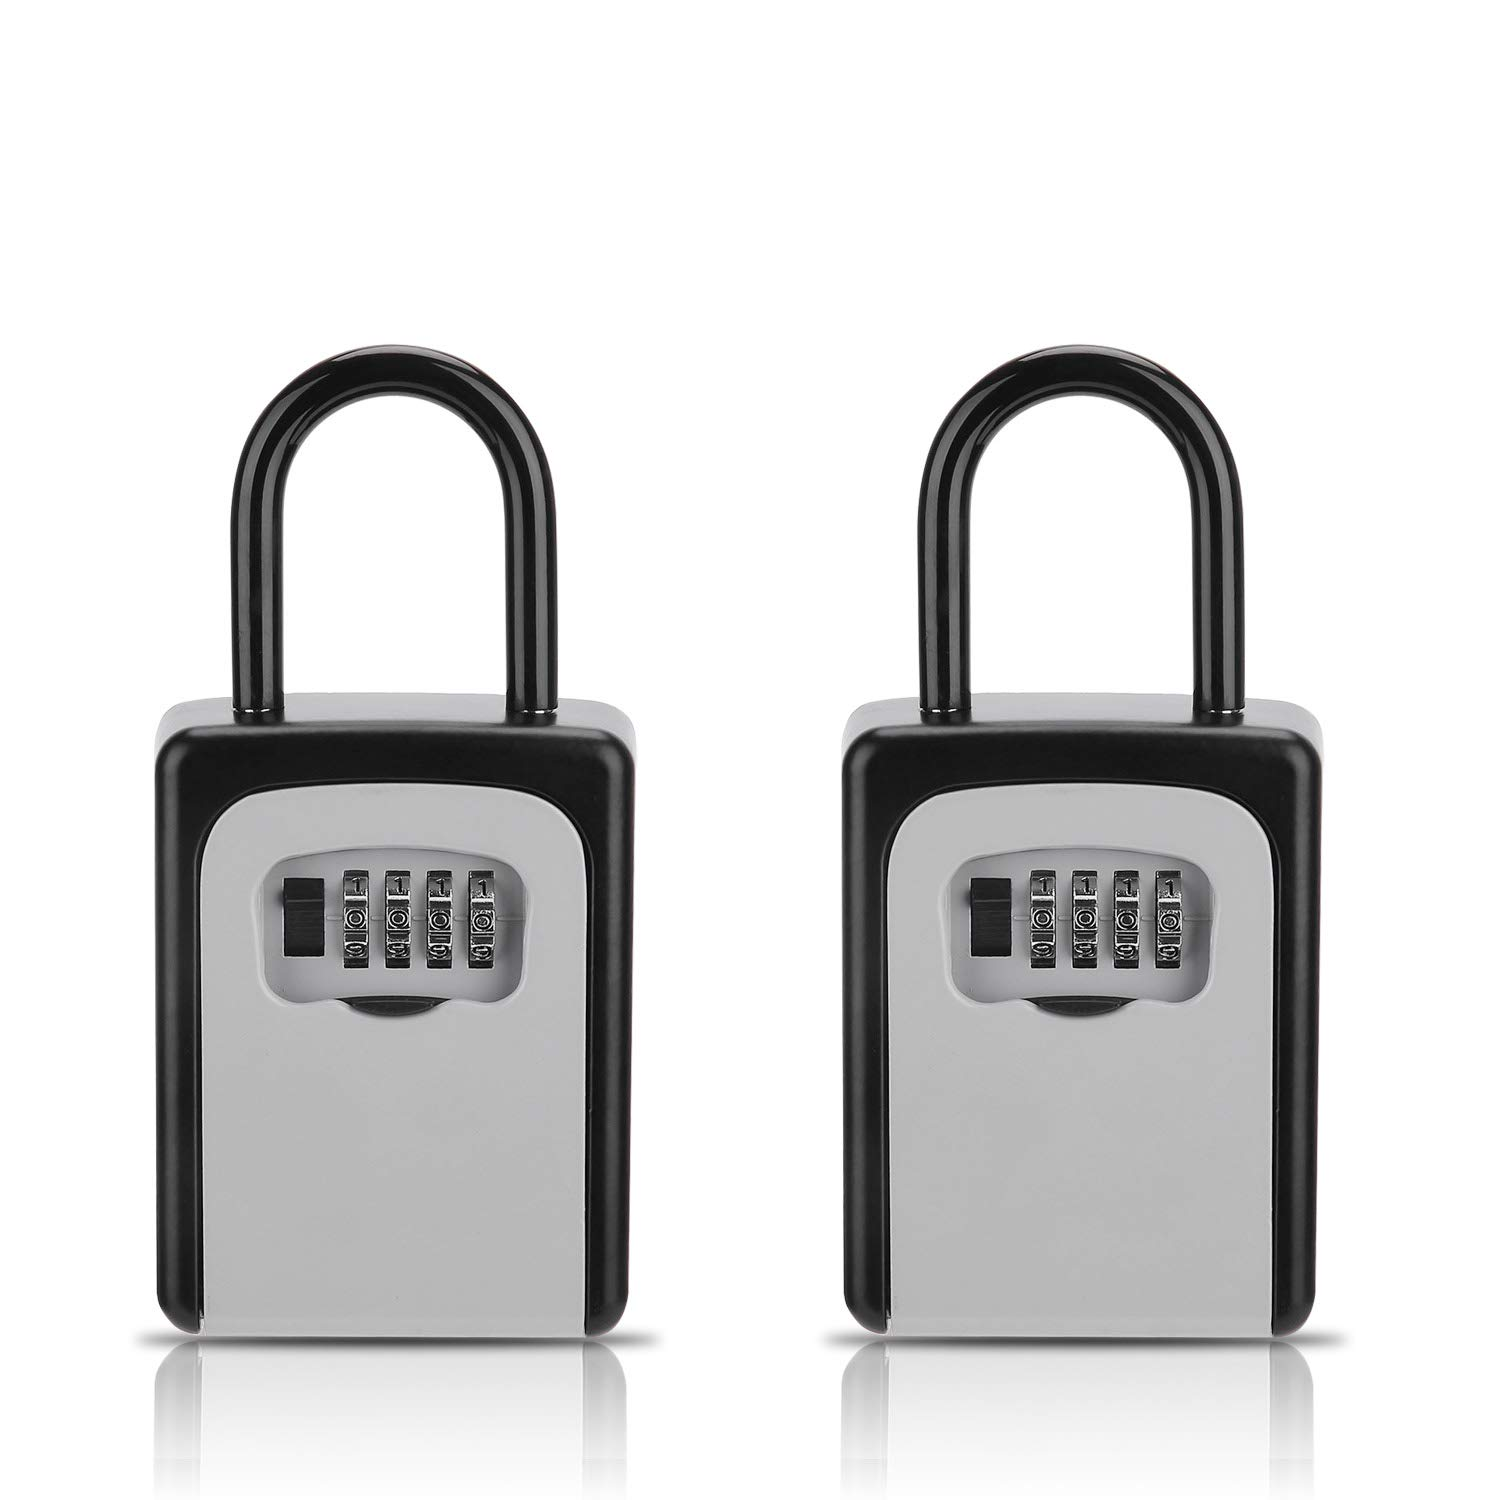 Key Lock Box, [2 Pack] Combination Lockbox for Keys with Code, Combo Door Lock-Box House Key Storage Locker - 2 Pack by Buteny